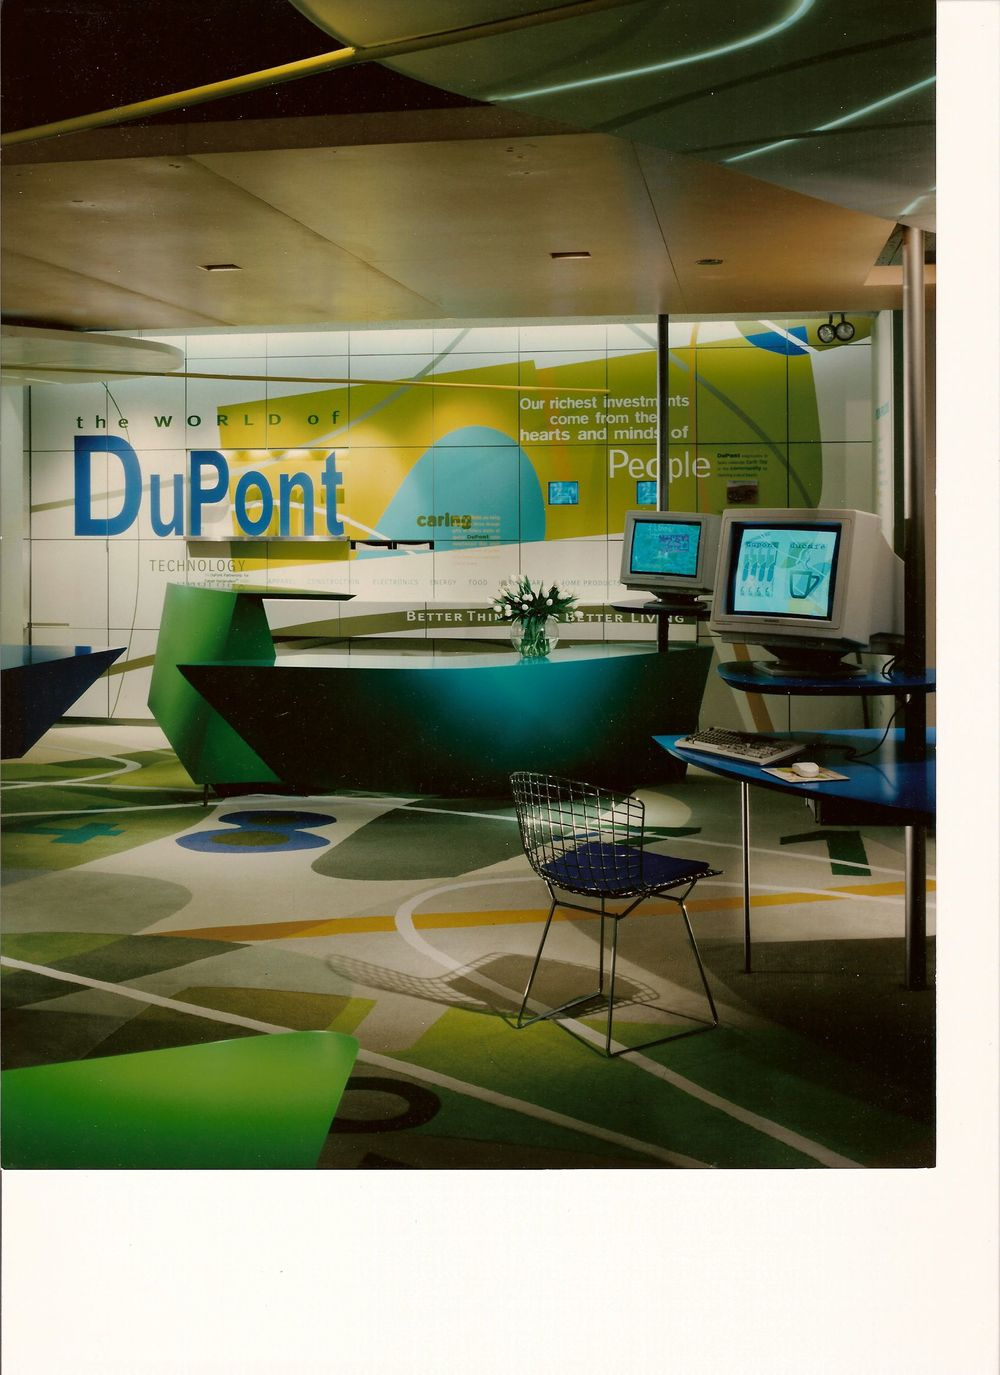 Corian wall panels, applied vinyl graphics, Corian clouds, neon work, custom millwork, and floor covering inlays by Ndio.